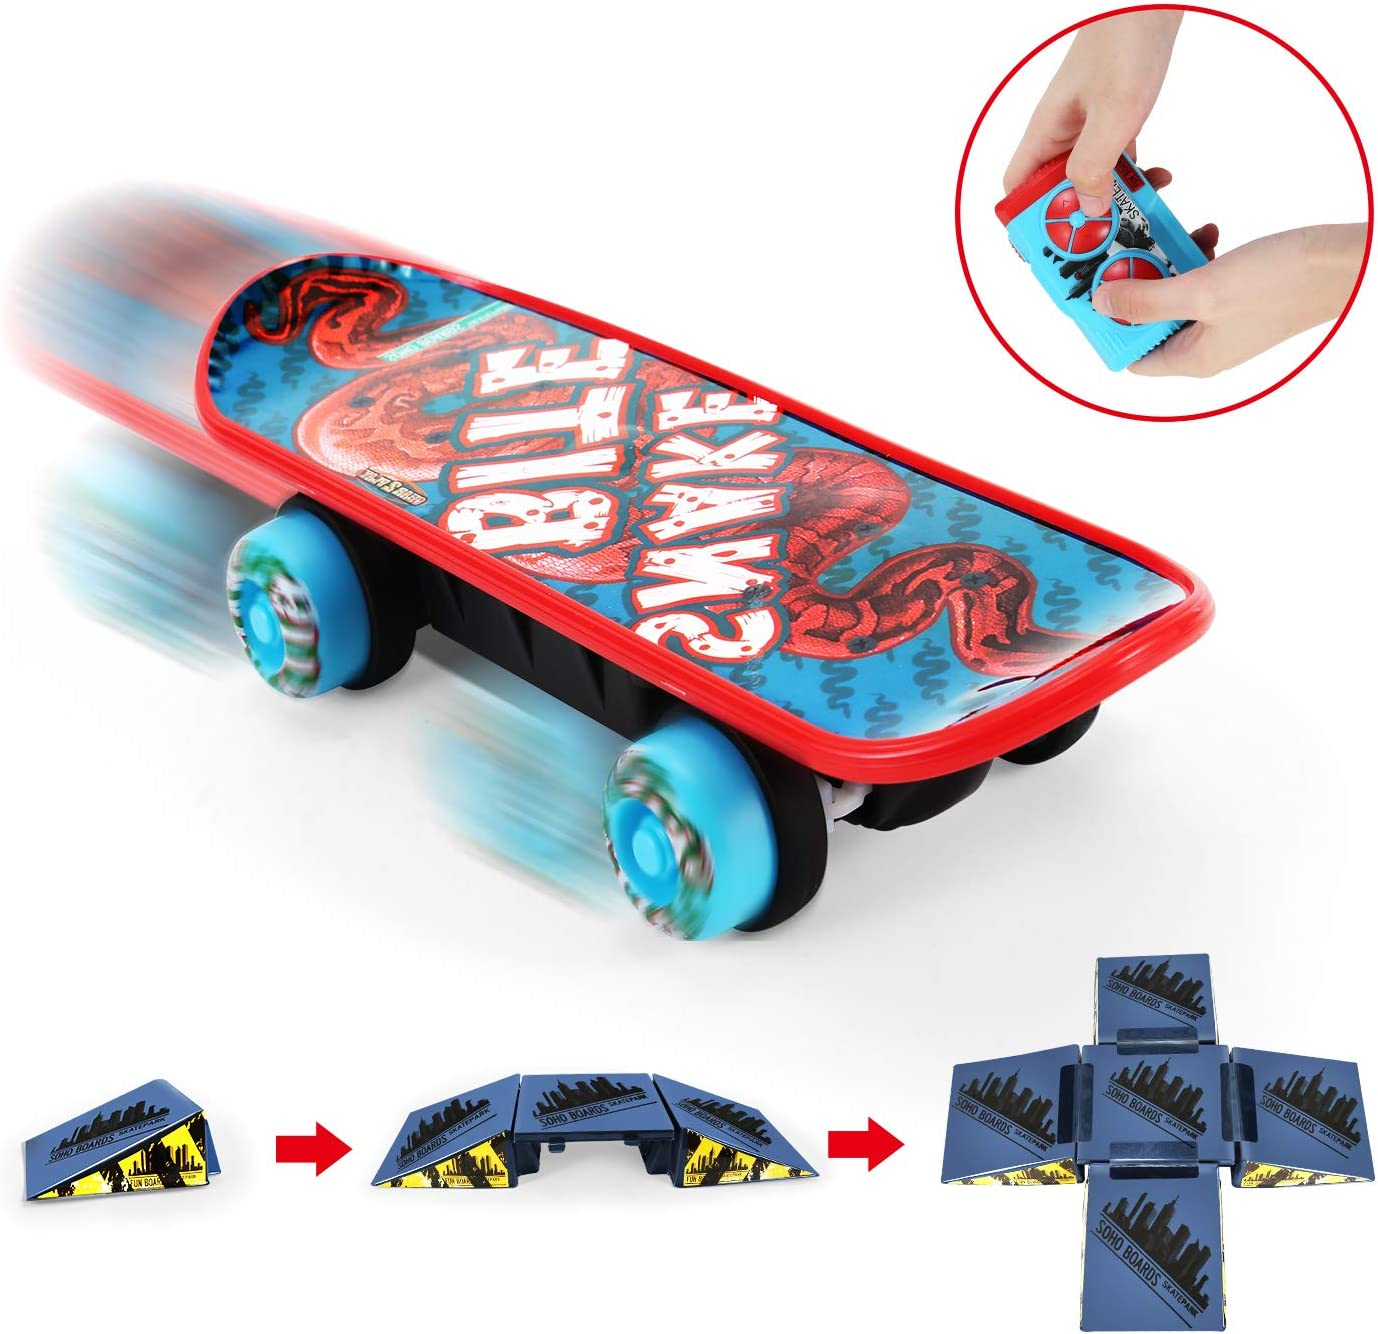 1 X Finger Board Skateboard Party Game Toy for Kids Education Toys Indoor LPLCA